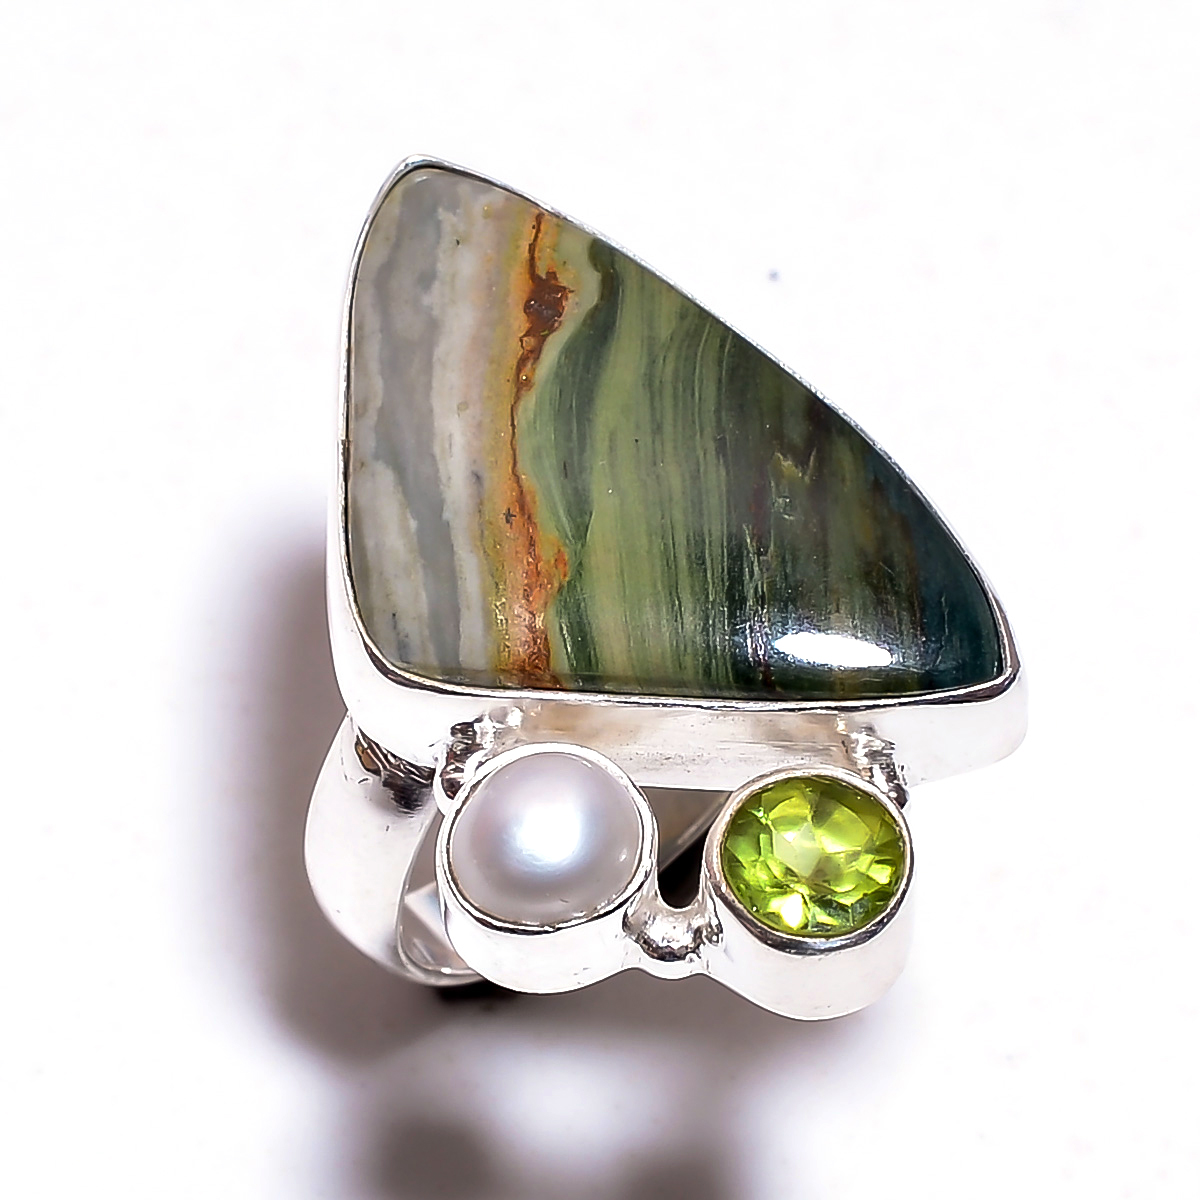 Larsonite Gemstone 925 Sterling Silver Ring Size 7